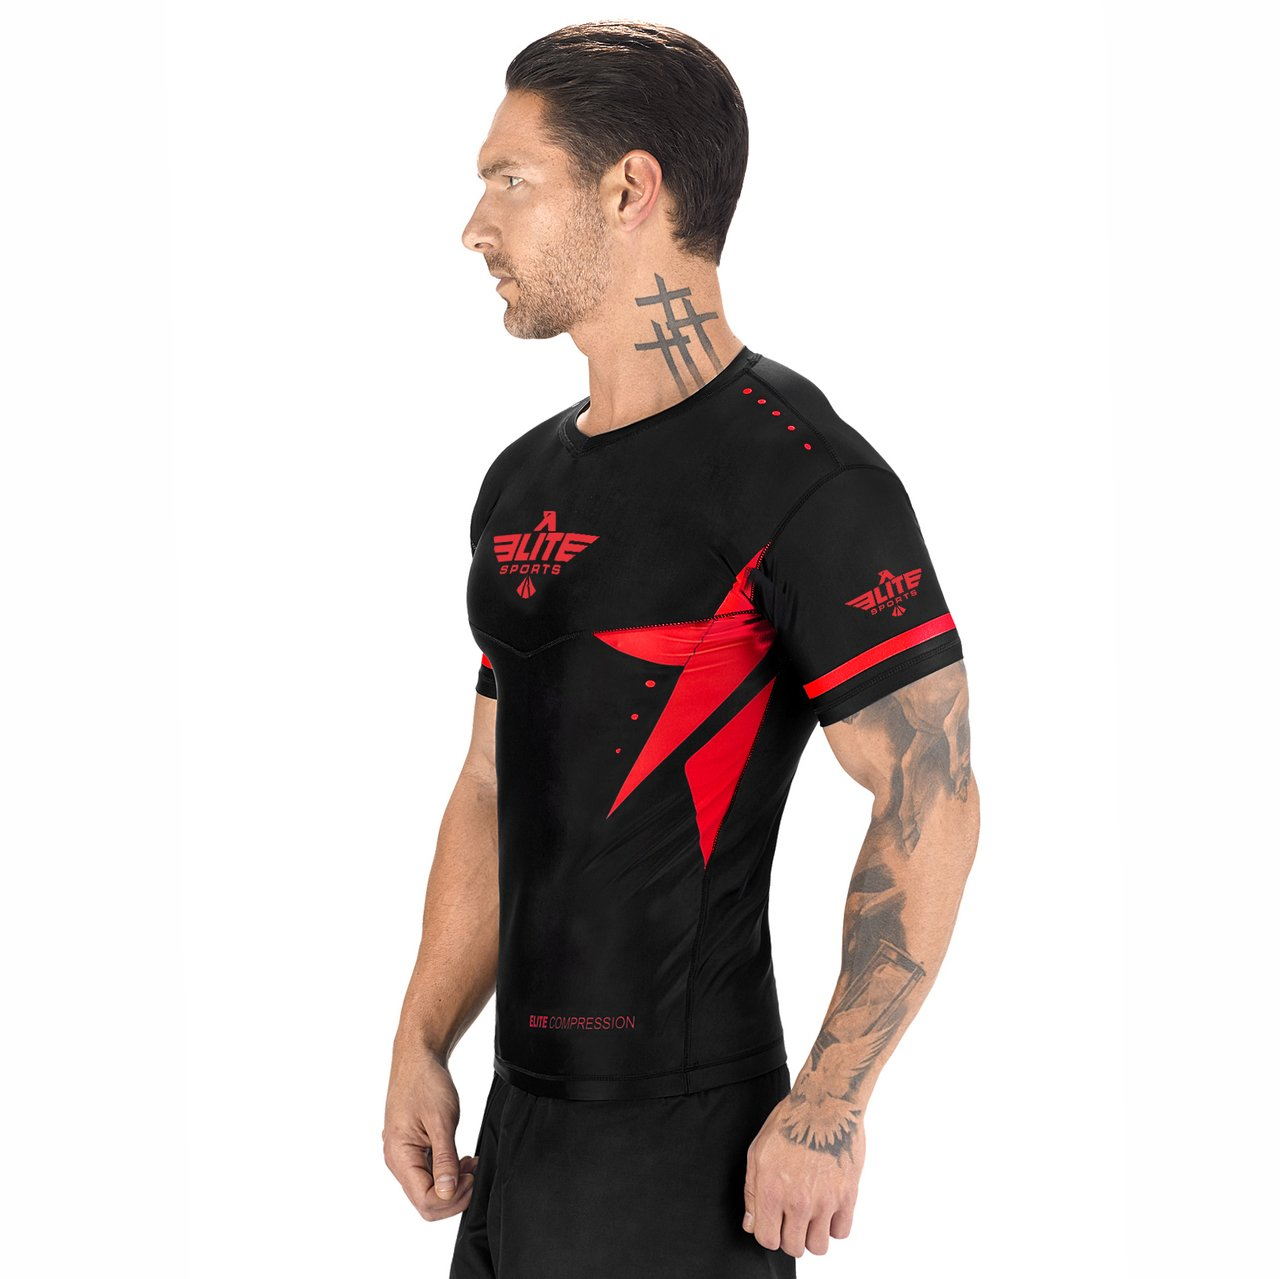 Load image into Gallery viewer, Elite Sports Star Series Sublimation Black/Red Short Sleeve Brazilian Jiu Jitsu BJJ Rash Guard